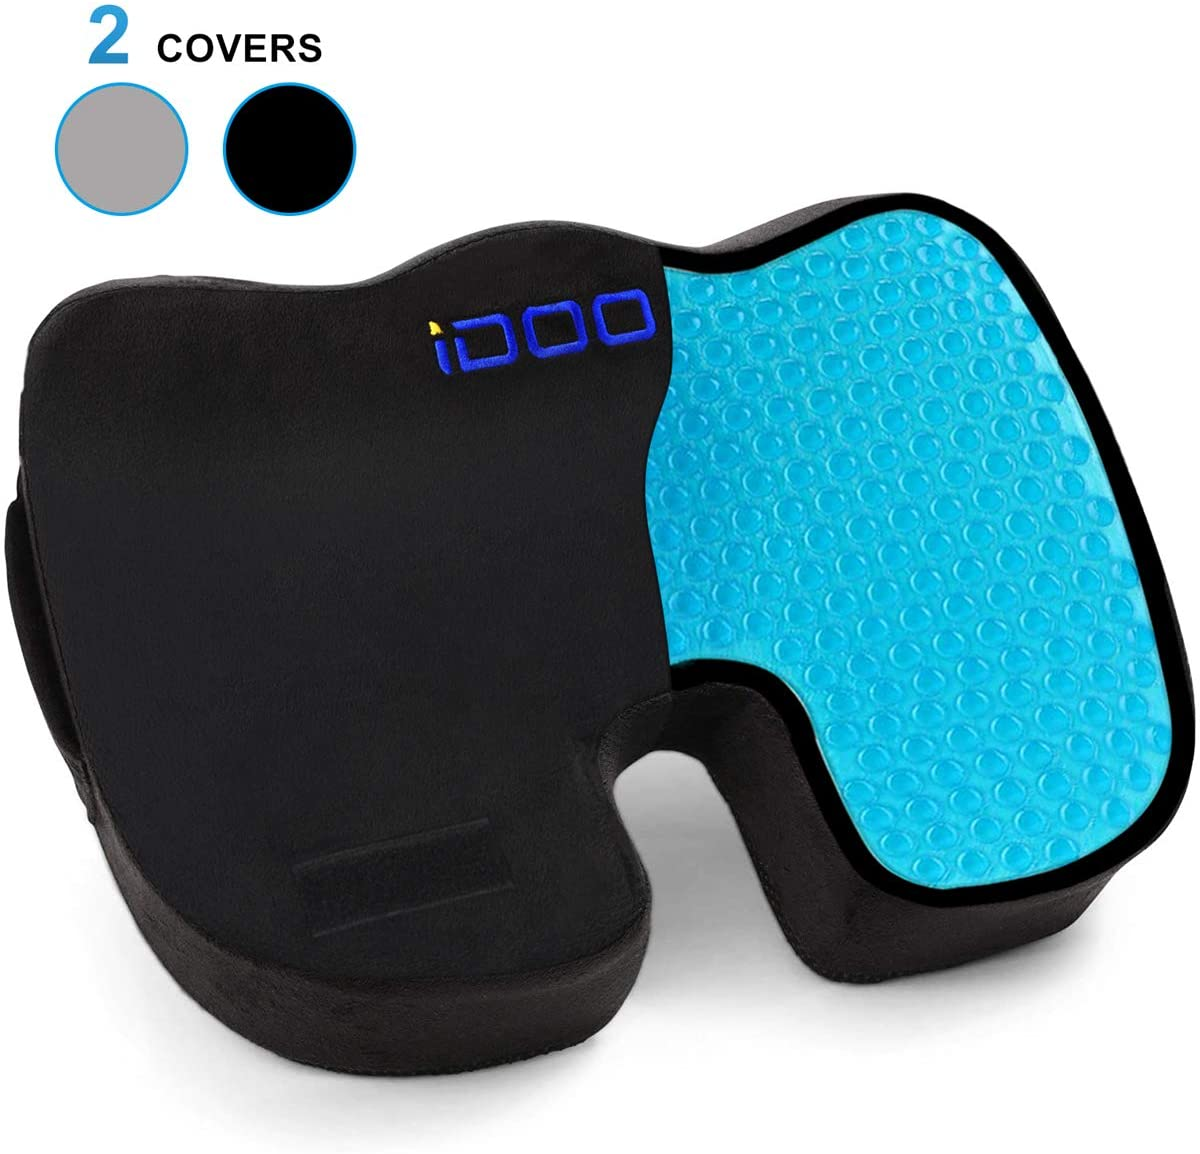 iDOO Cooling Gel Seat Cushion for Office Chair, 100% Memory Foam Gel Seat Cushion, Coccyx Orthopedic Pad for Tailbone Pain, Kitchens Chair Car Seat Cushion, Sciatica & Back Pain Relief - Black